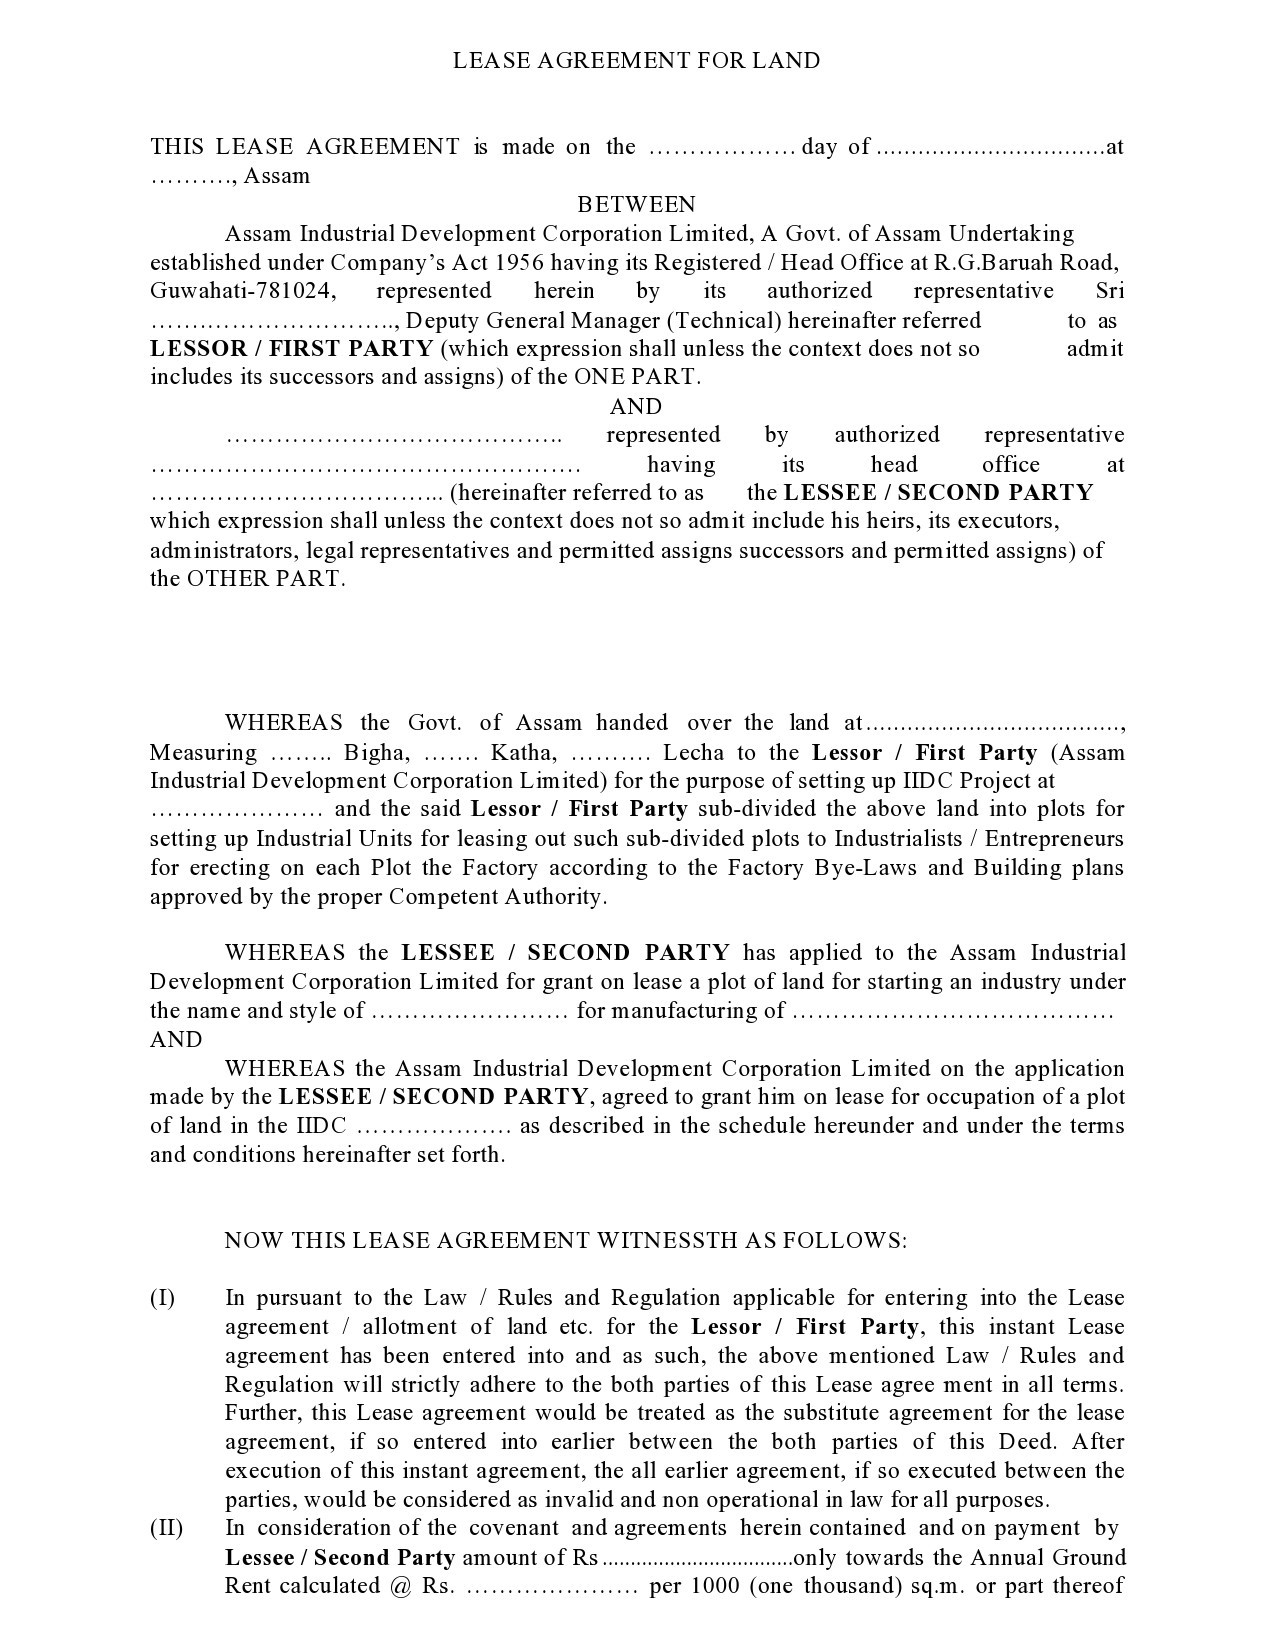 Free land lease agreement 05